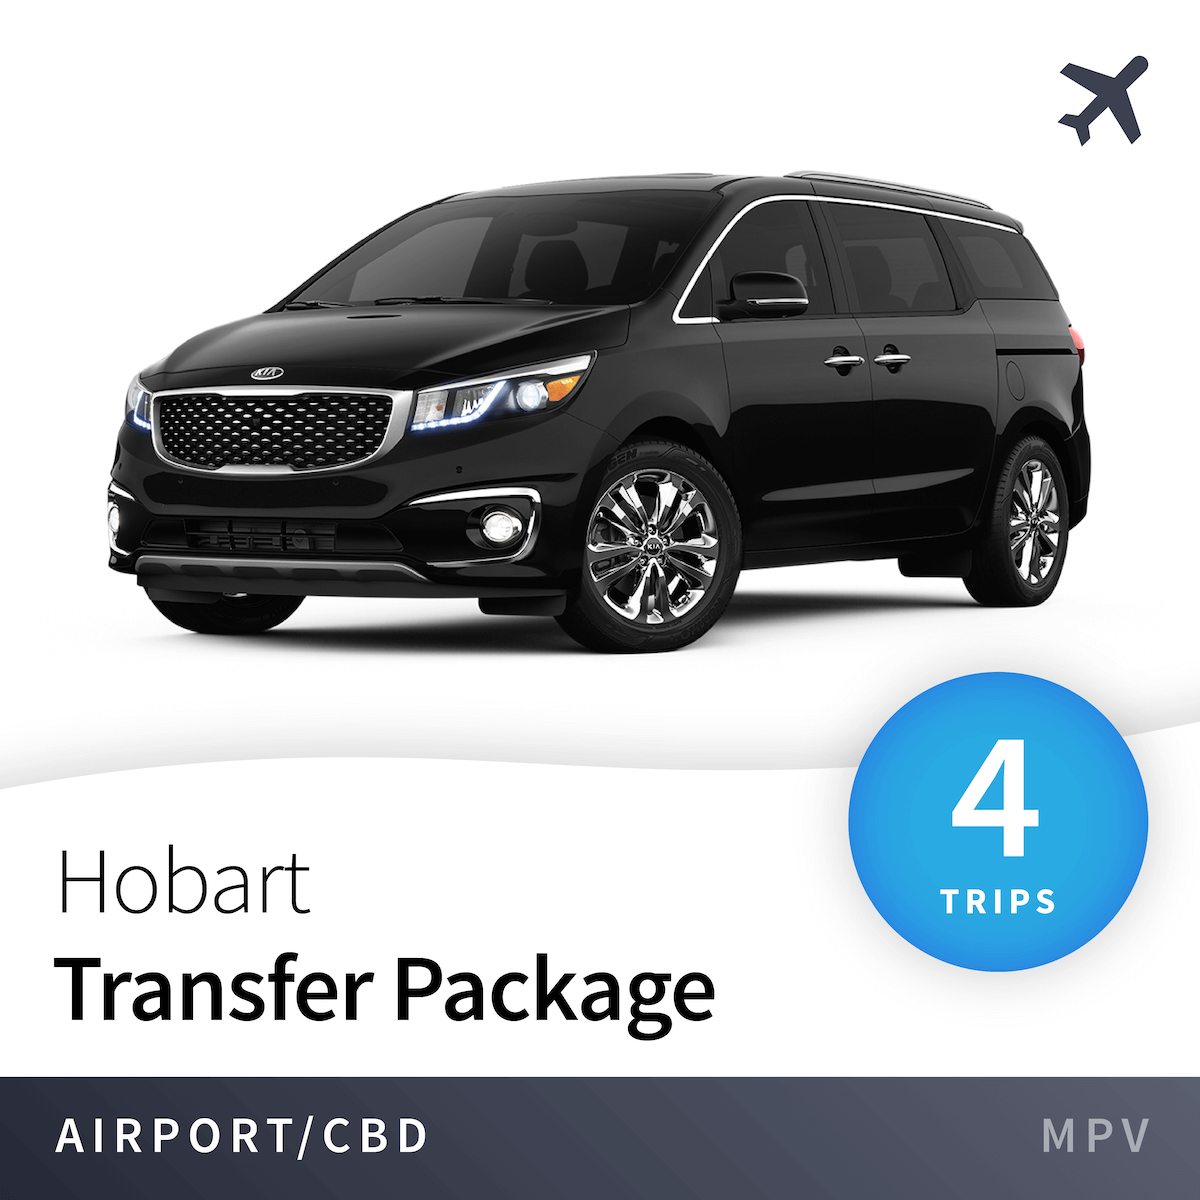 Hobart Airport Transfer Package - MPV (4 Trips) 2